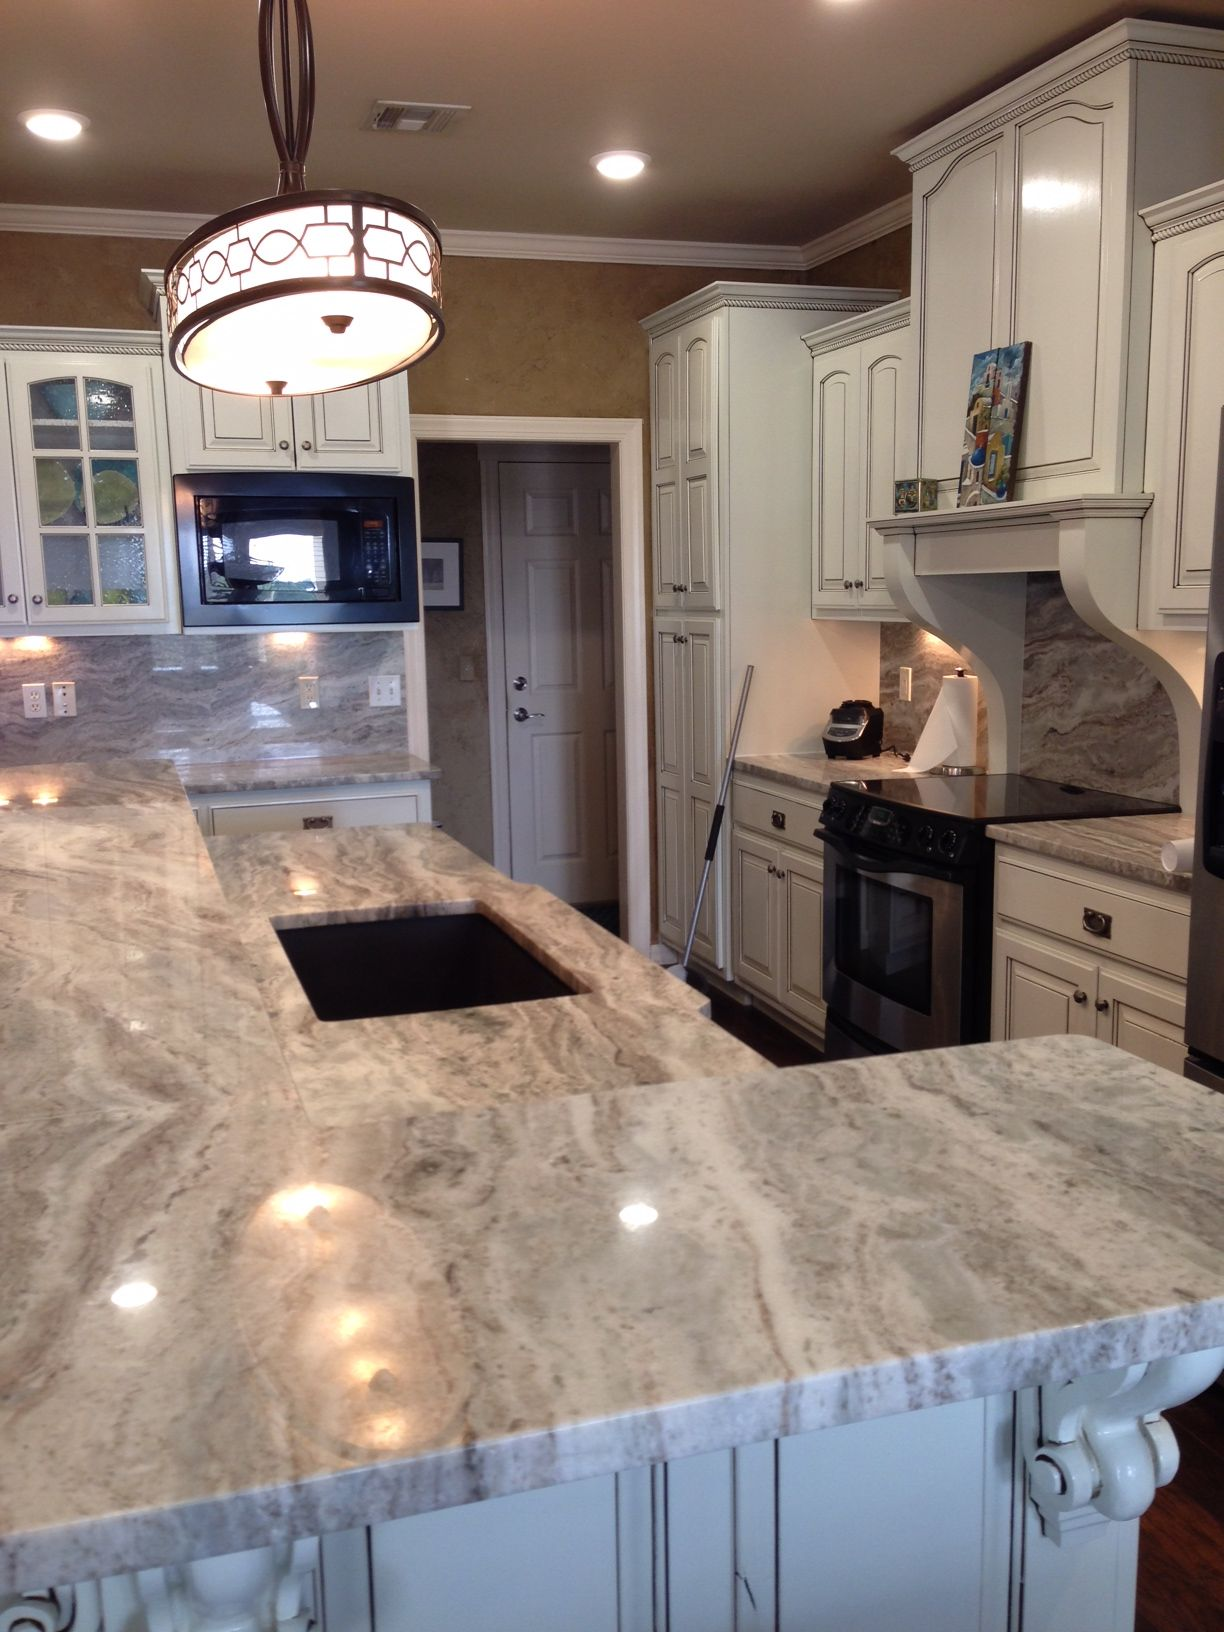 Countertops are fantasy brown granite the backsplash is marble - Polished Fantasy Brown Quartzite Kitchen Counters And Full Height Backsplash Considered A